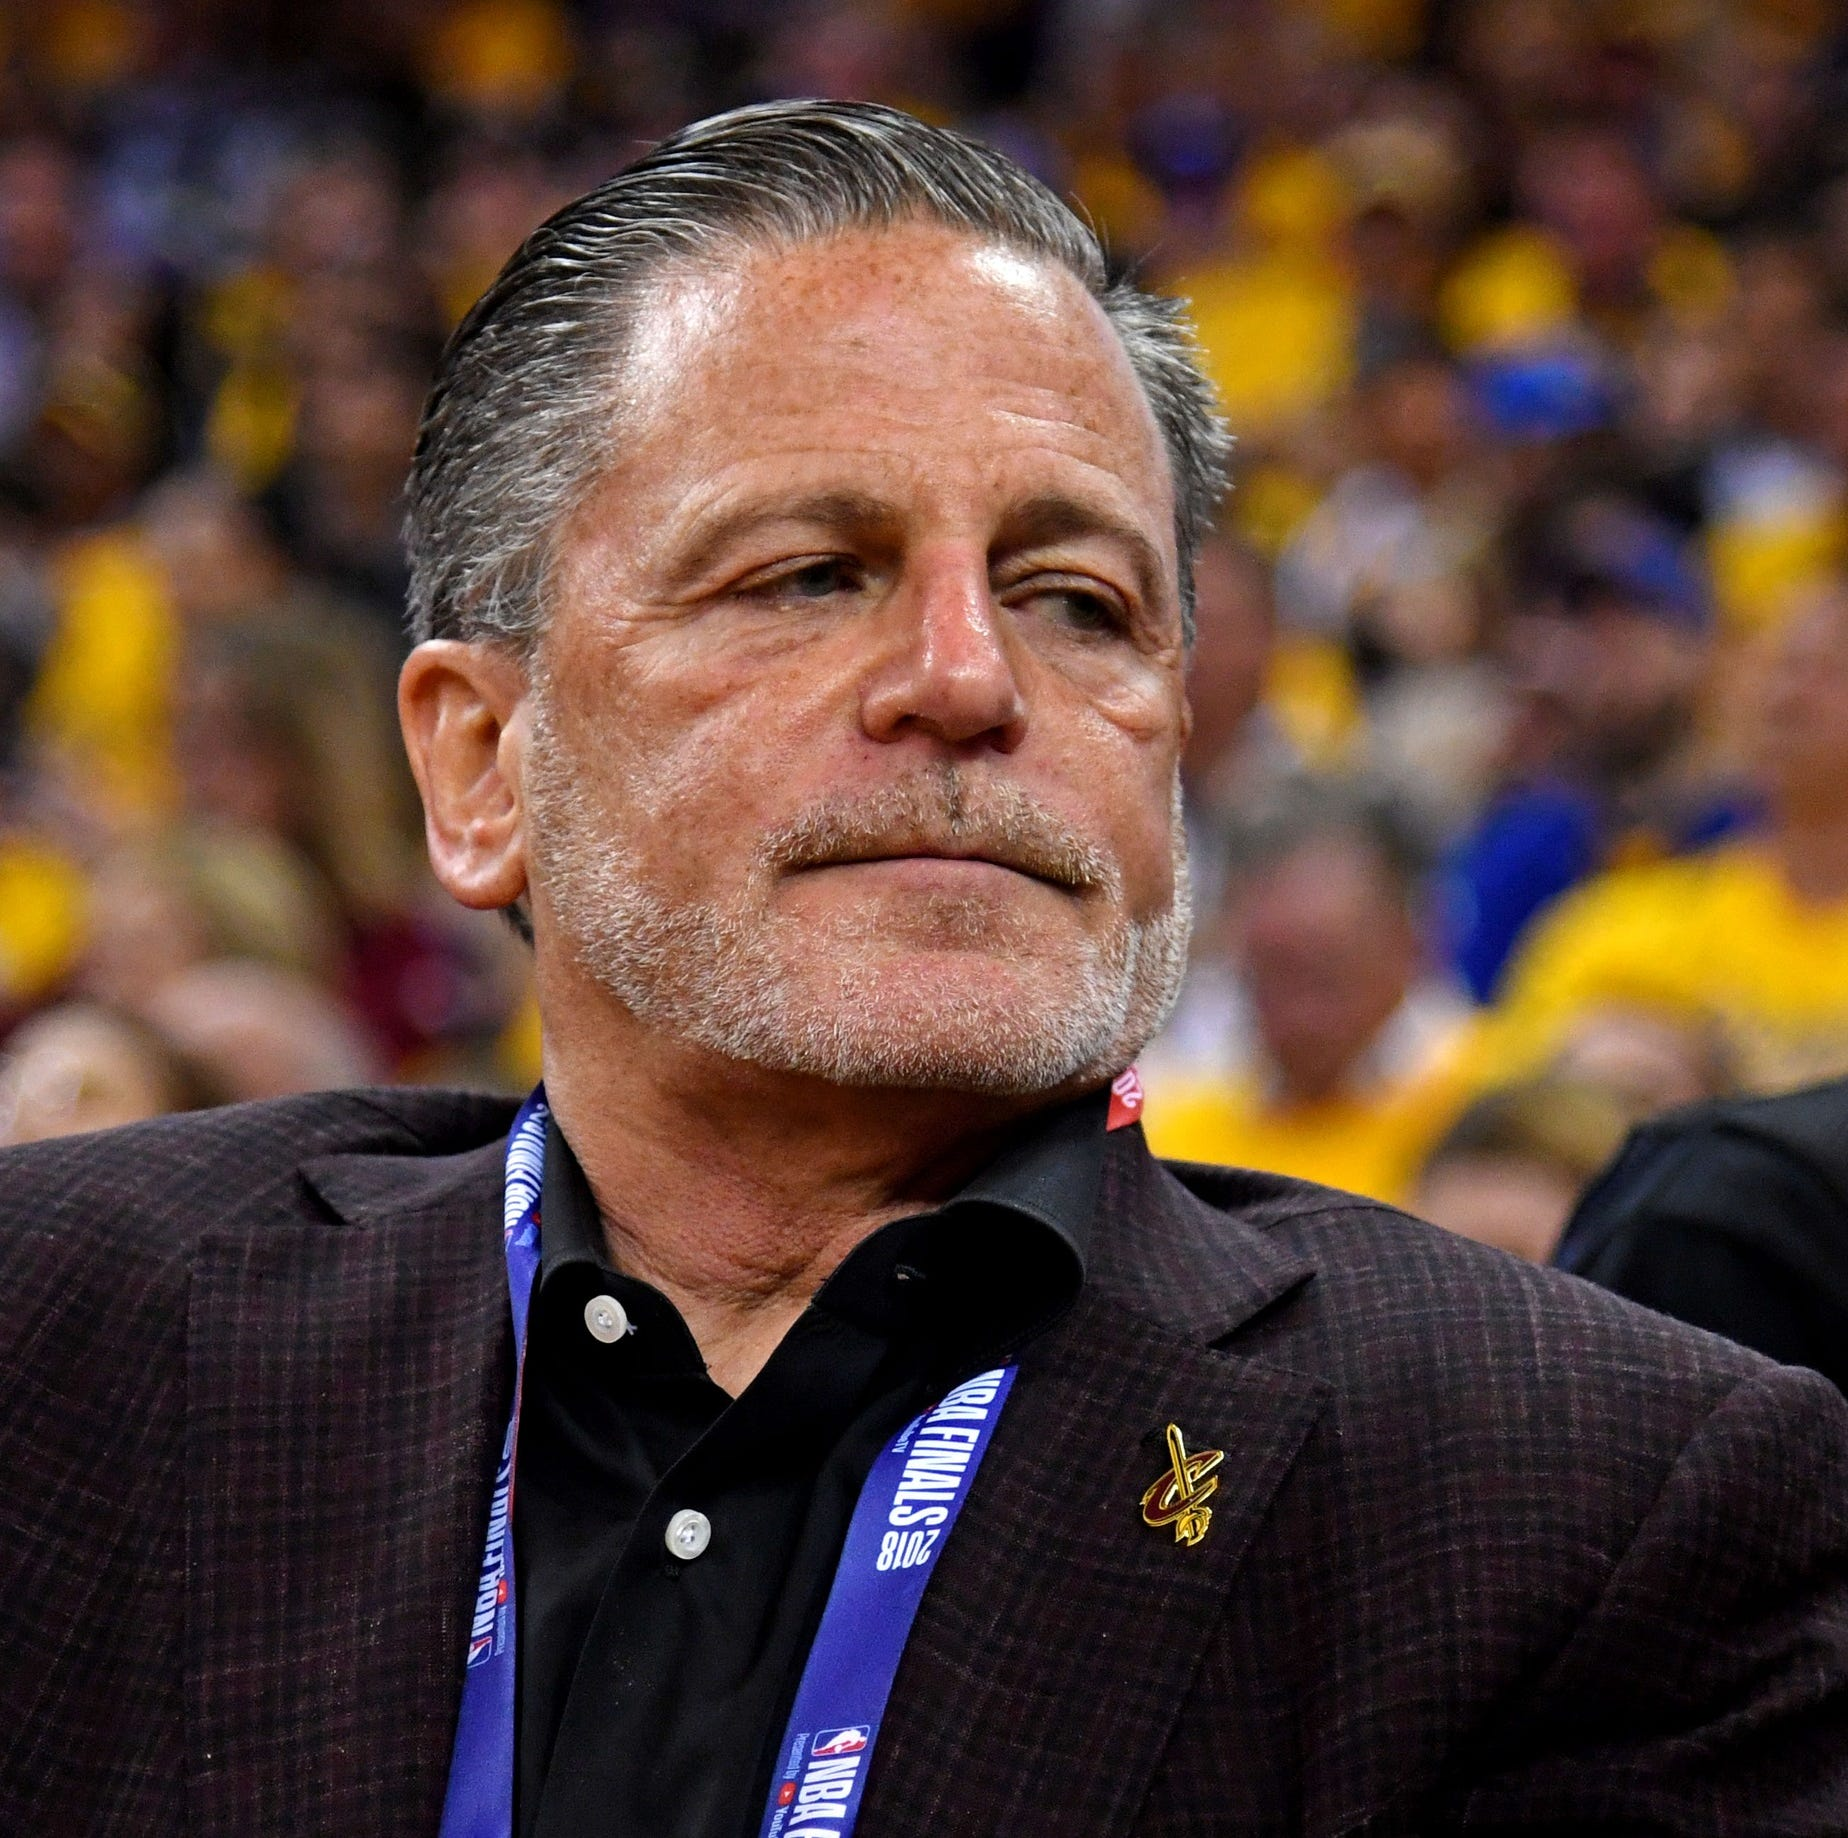 The Tigers, and Detroit, could use a feisty owner like Dan Gilbert